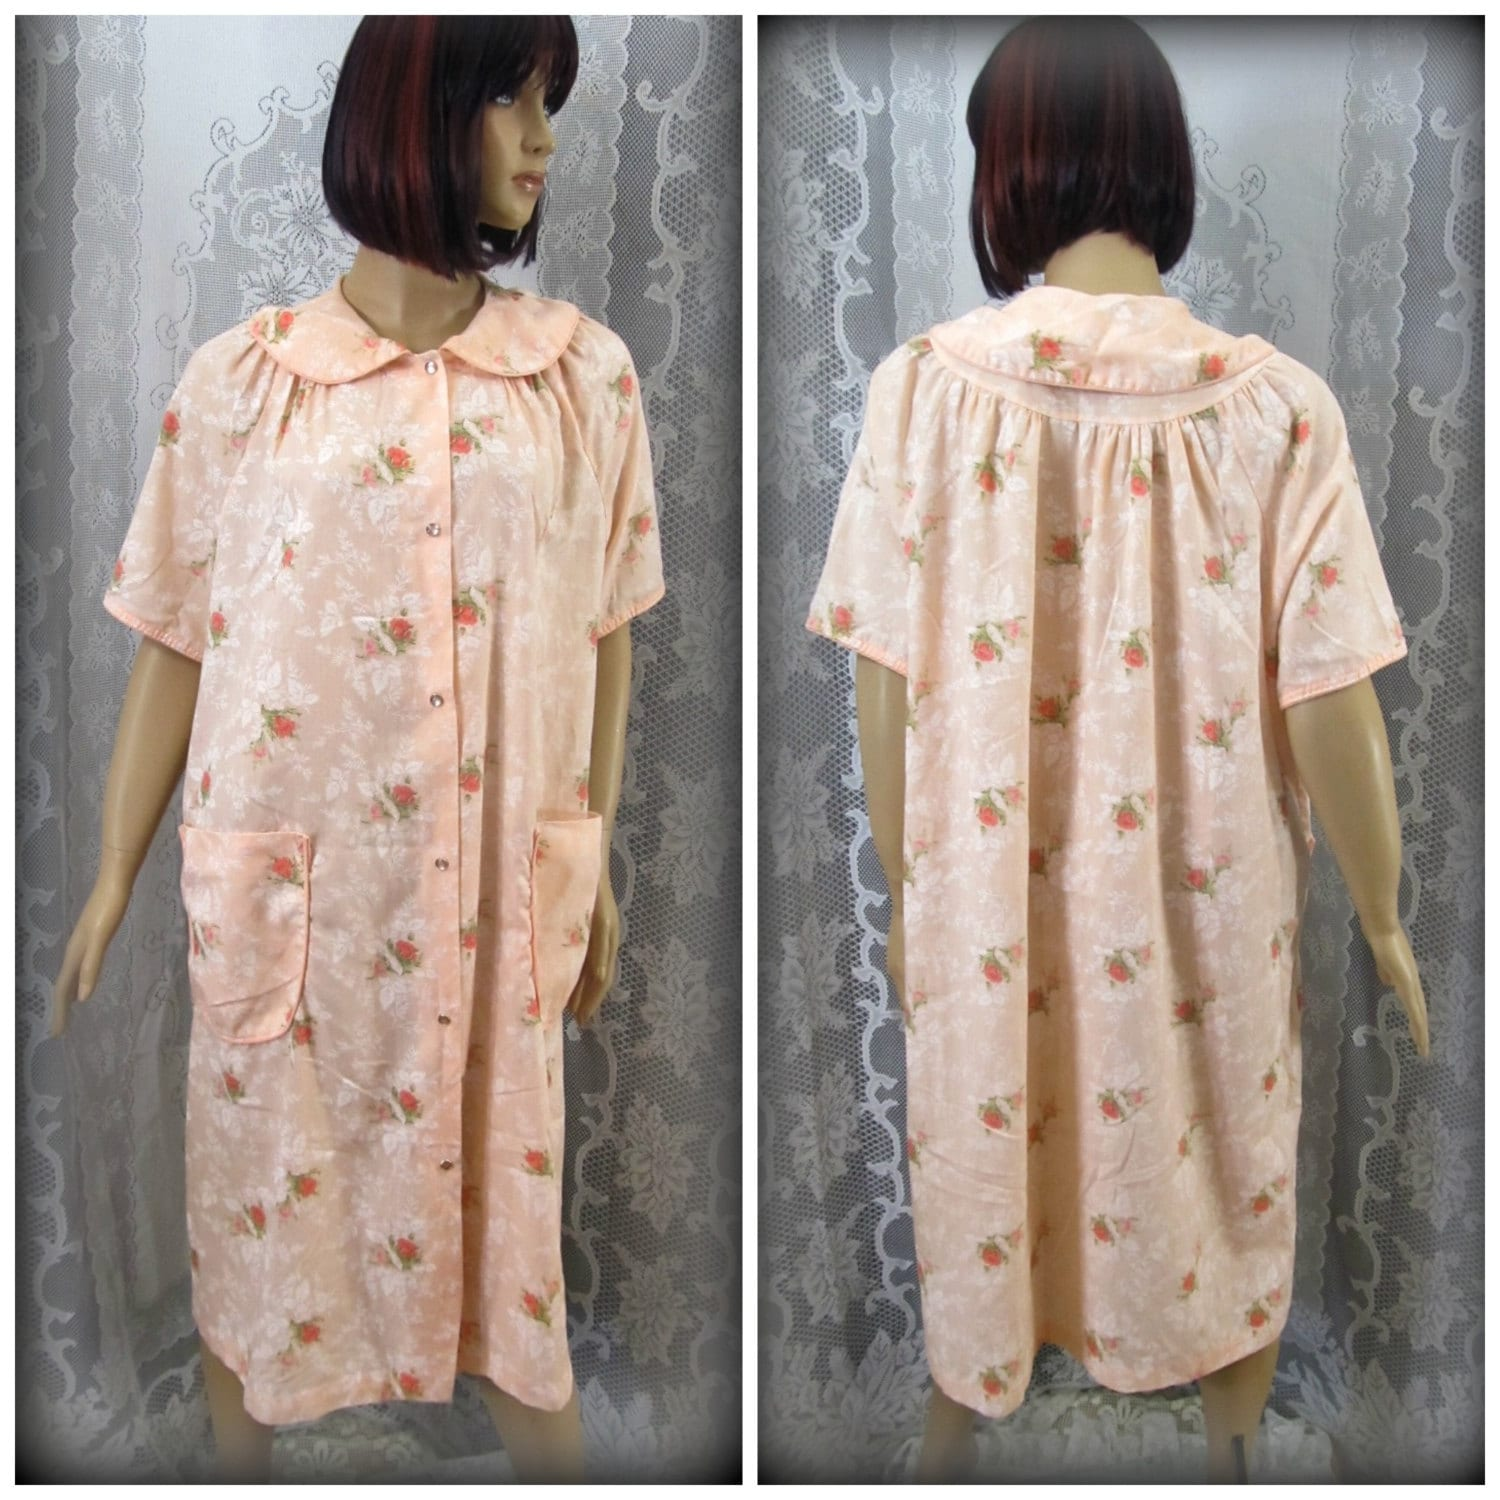 House Coat: Womens House Coat Vintage Bath Robe Button Up House